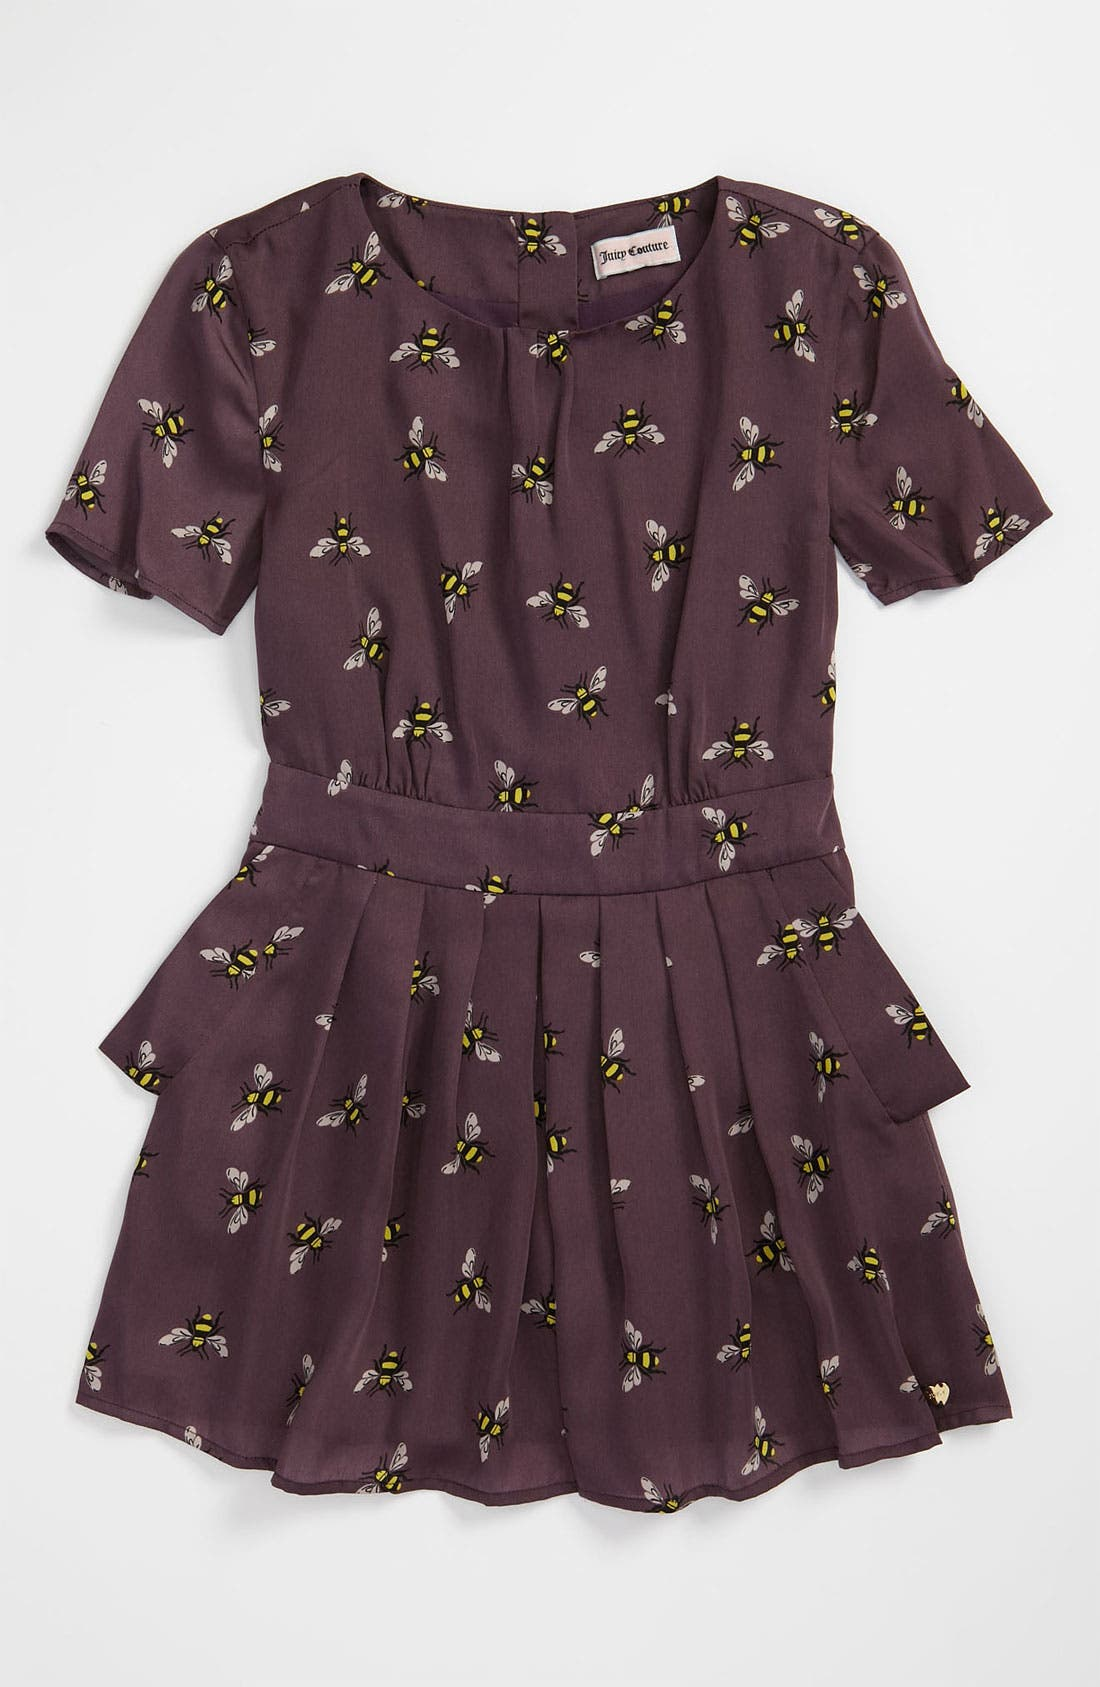 Alternate Image 1 Selected - Juicy Couture 'Bumble Bee' Charmeuse Dress (Little Girls & Big Girls)